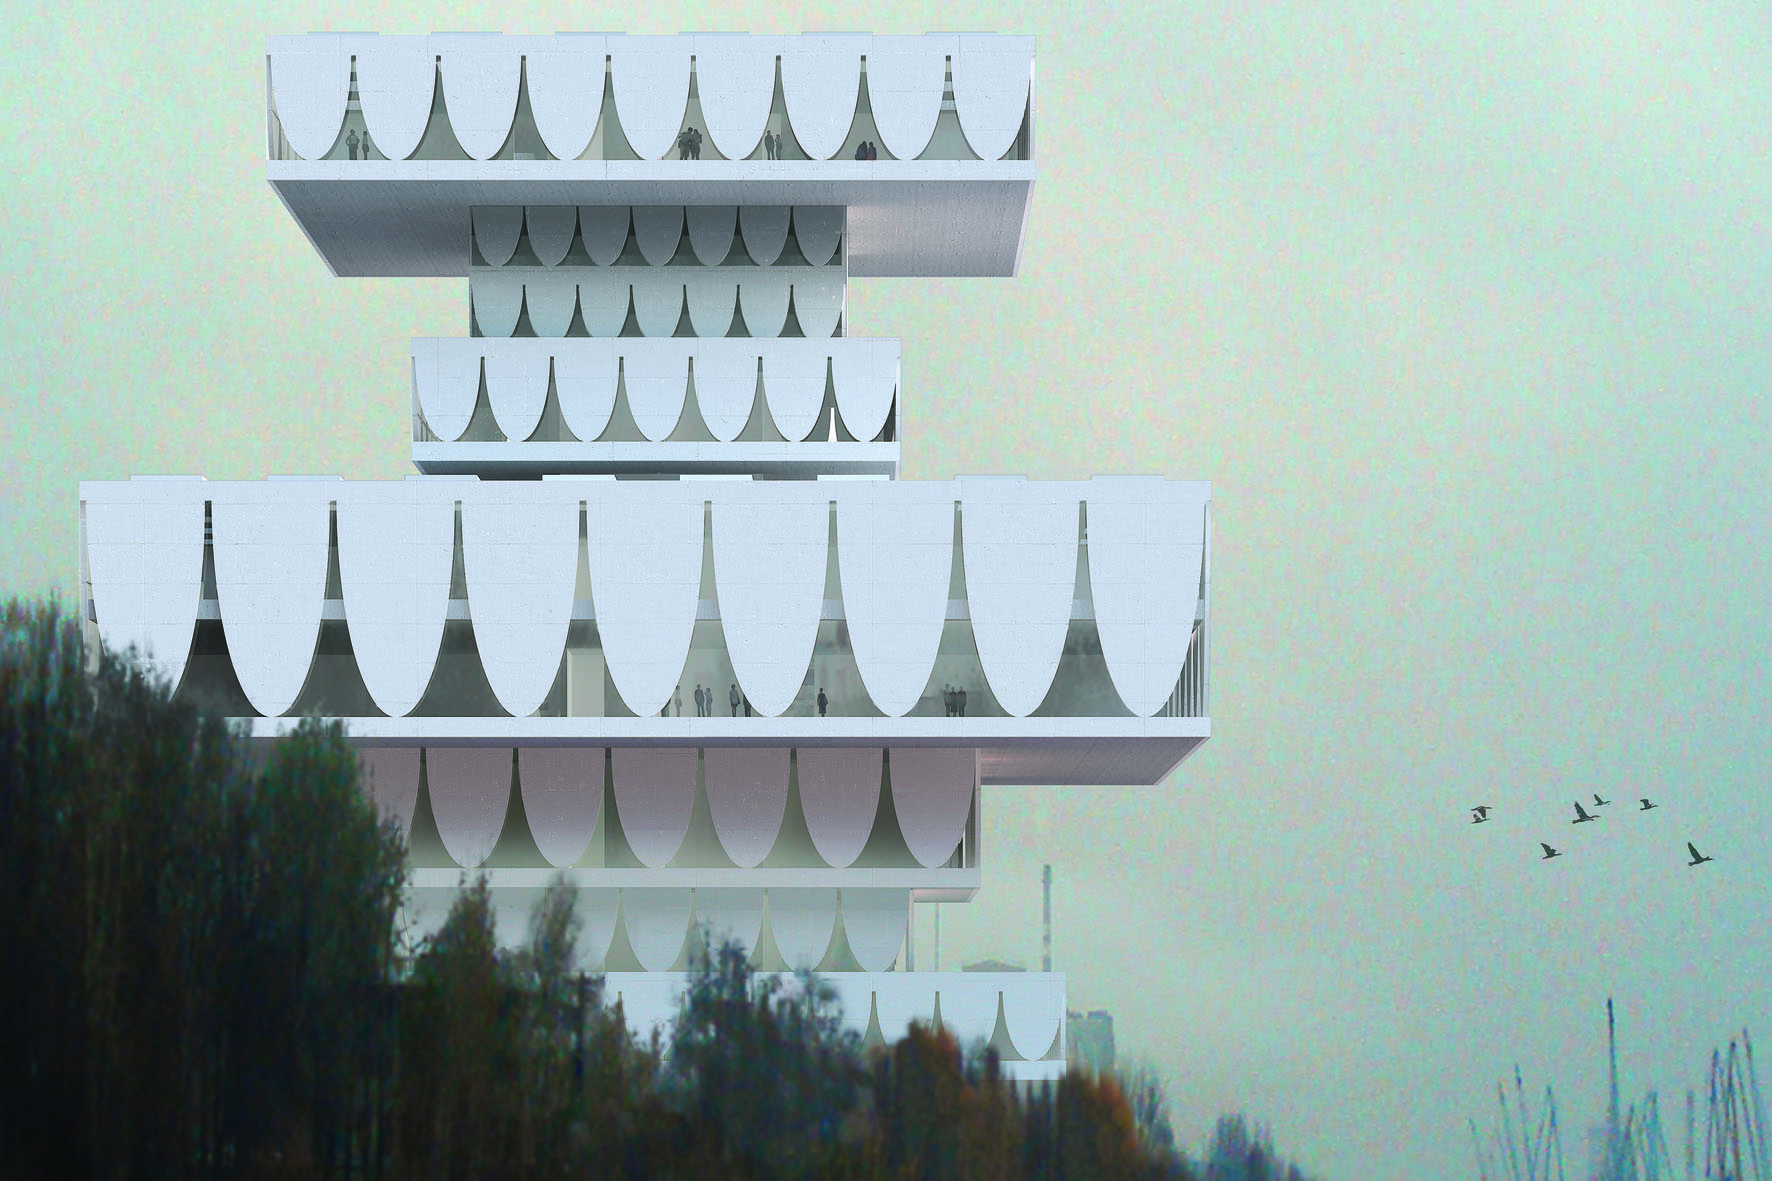 A rendering of Valerio Olgiati's 'Perm Museum XXI, Perm, Russia' (2008) | © TOTAL REAL AG